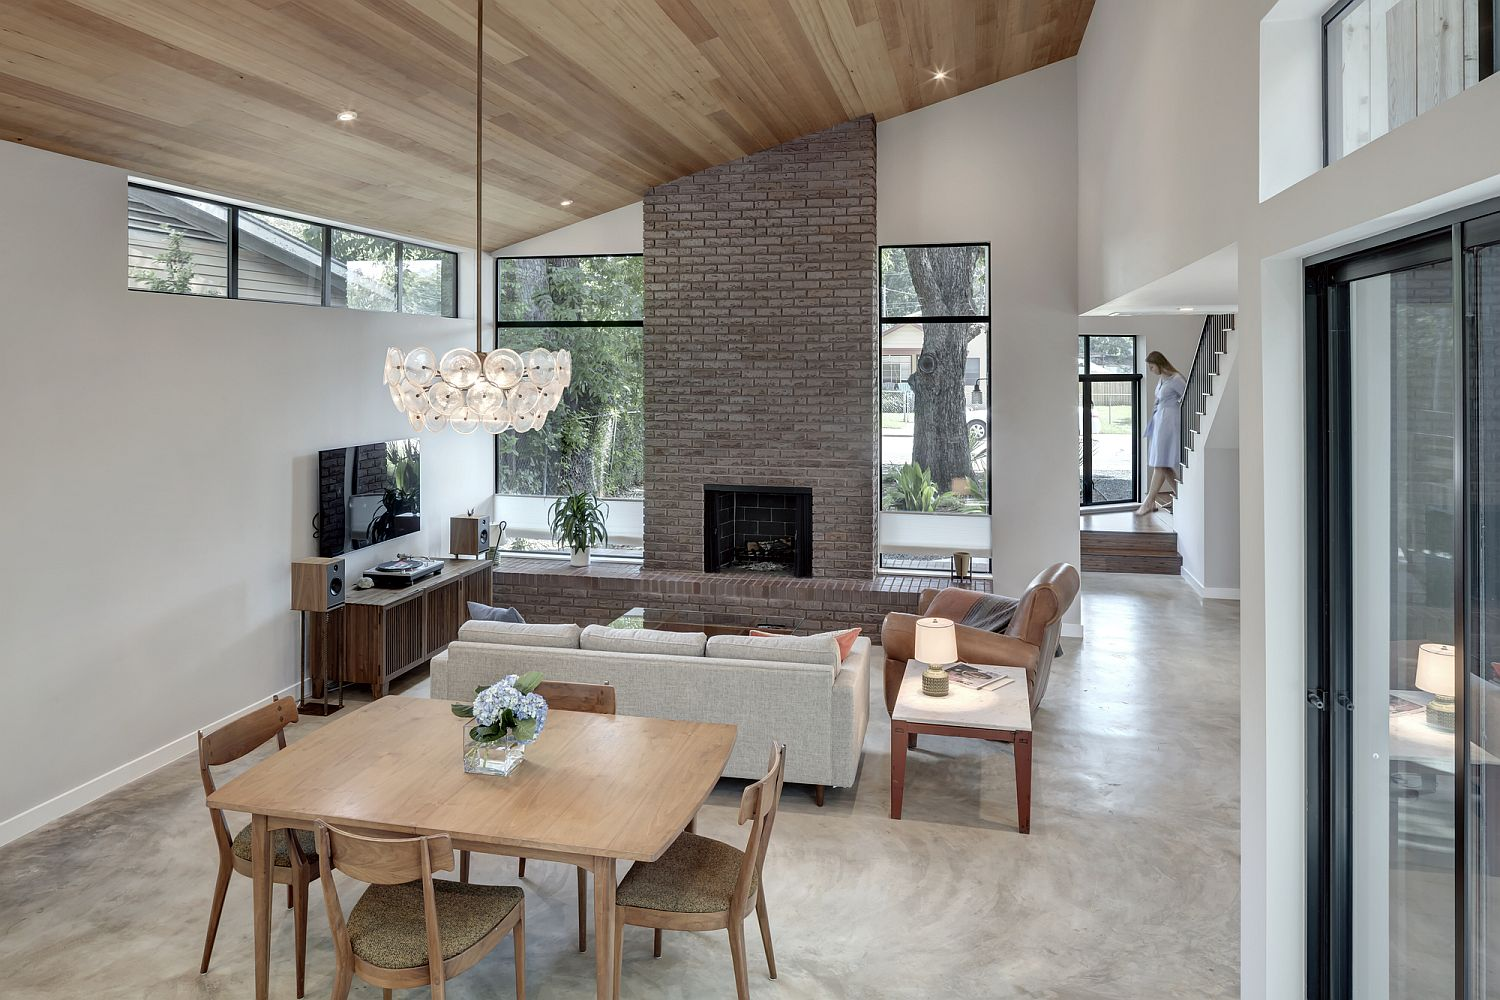 Open plan living area of the house with fireplace at its heart